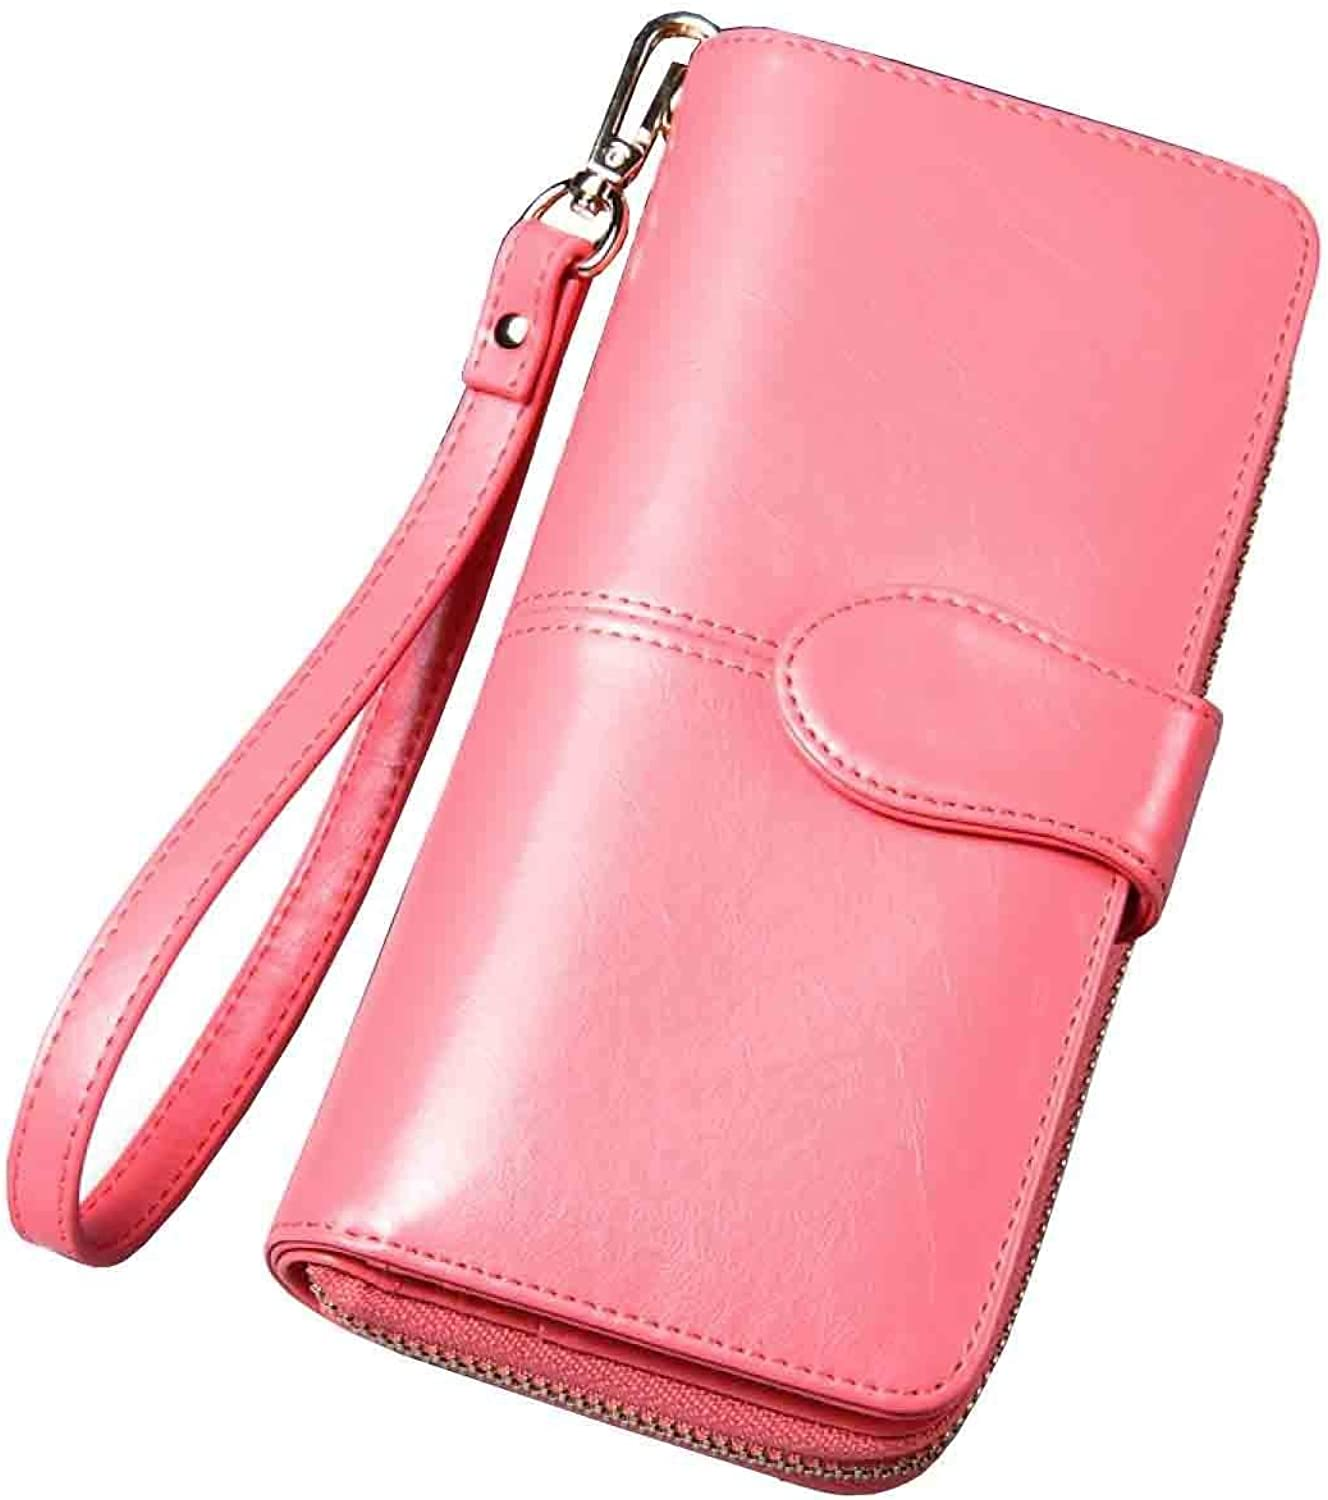 Cross Women Large Capacity Leather Zipper Wallet Purse Wristlet Handbag with Removable Wrist Strap for Work (color   5, Size   One Size)